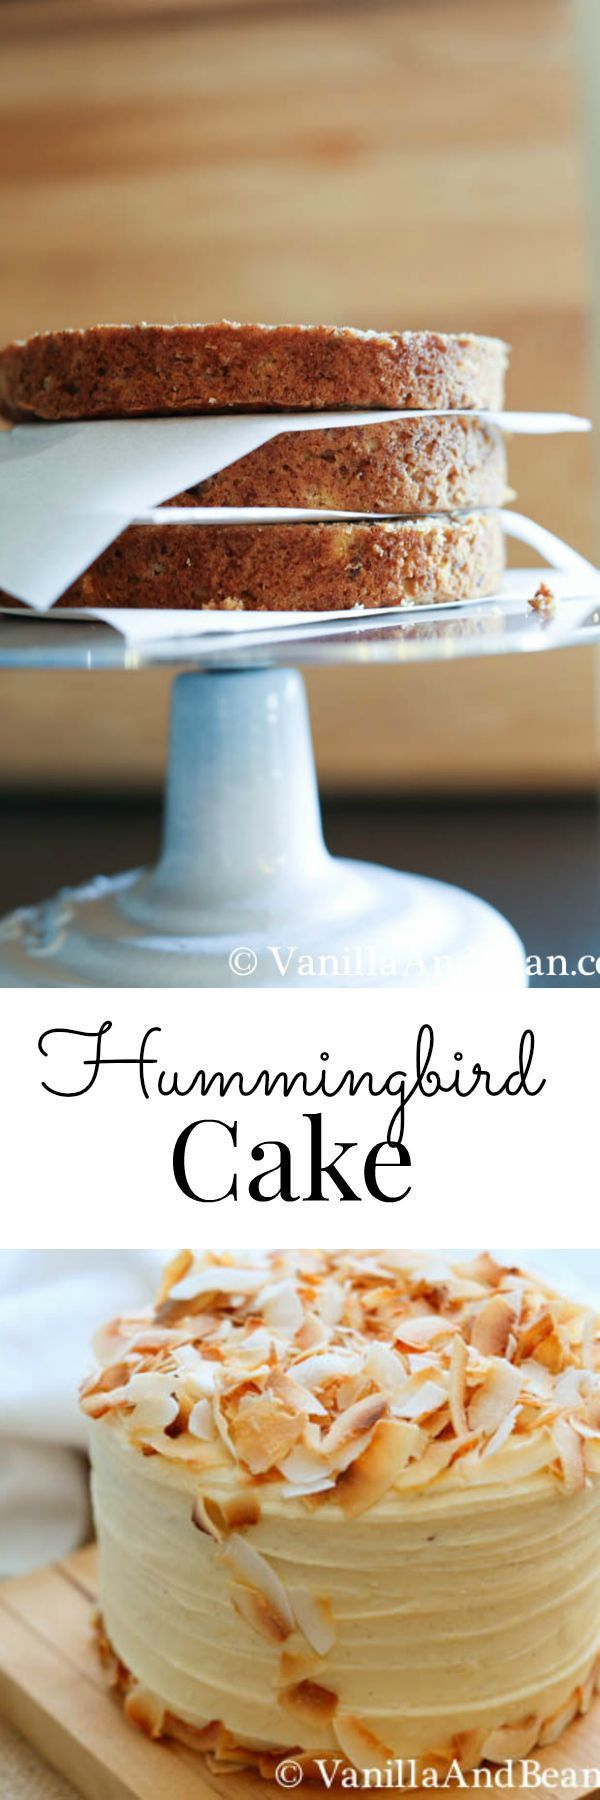 942042 best favorite food bloggers images on pinterest kitchens hummingbird cake with lemon cream cheese icing a classic vanilla and bean forumfinder Gallery